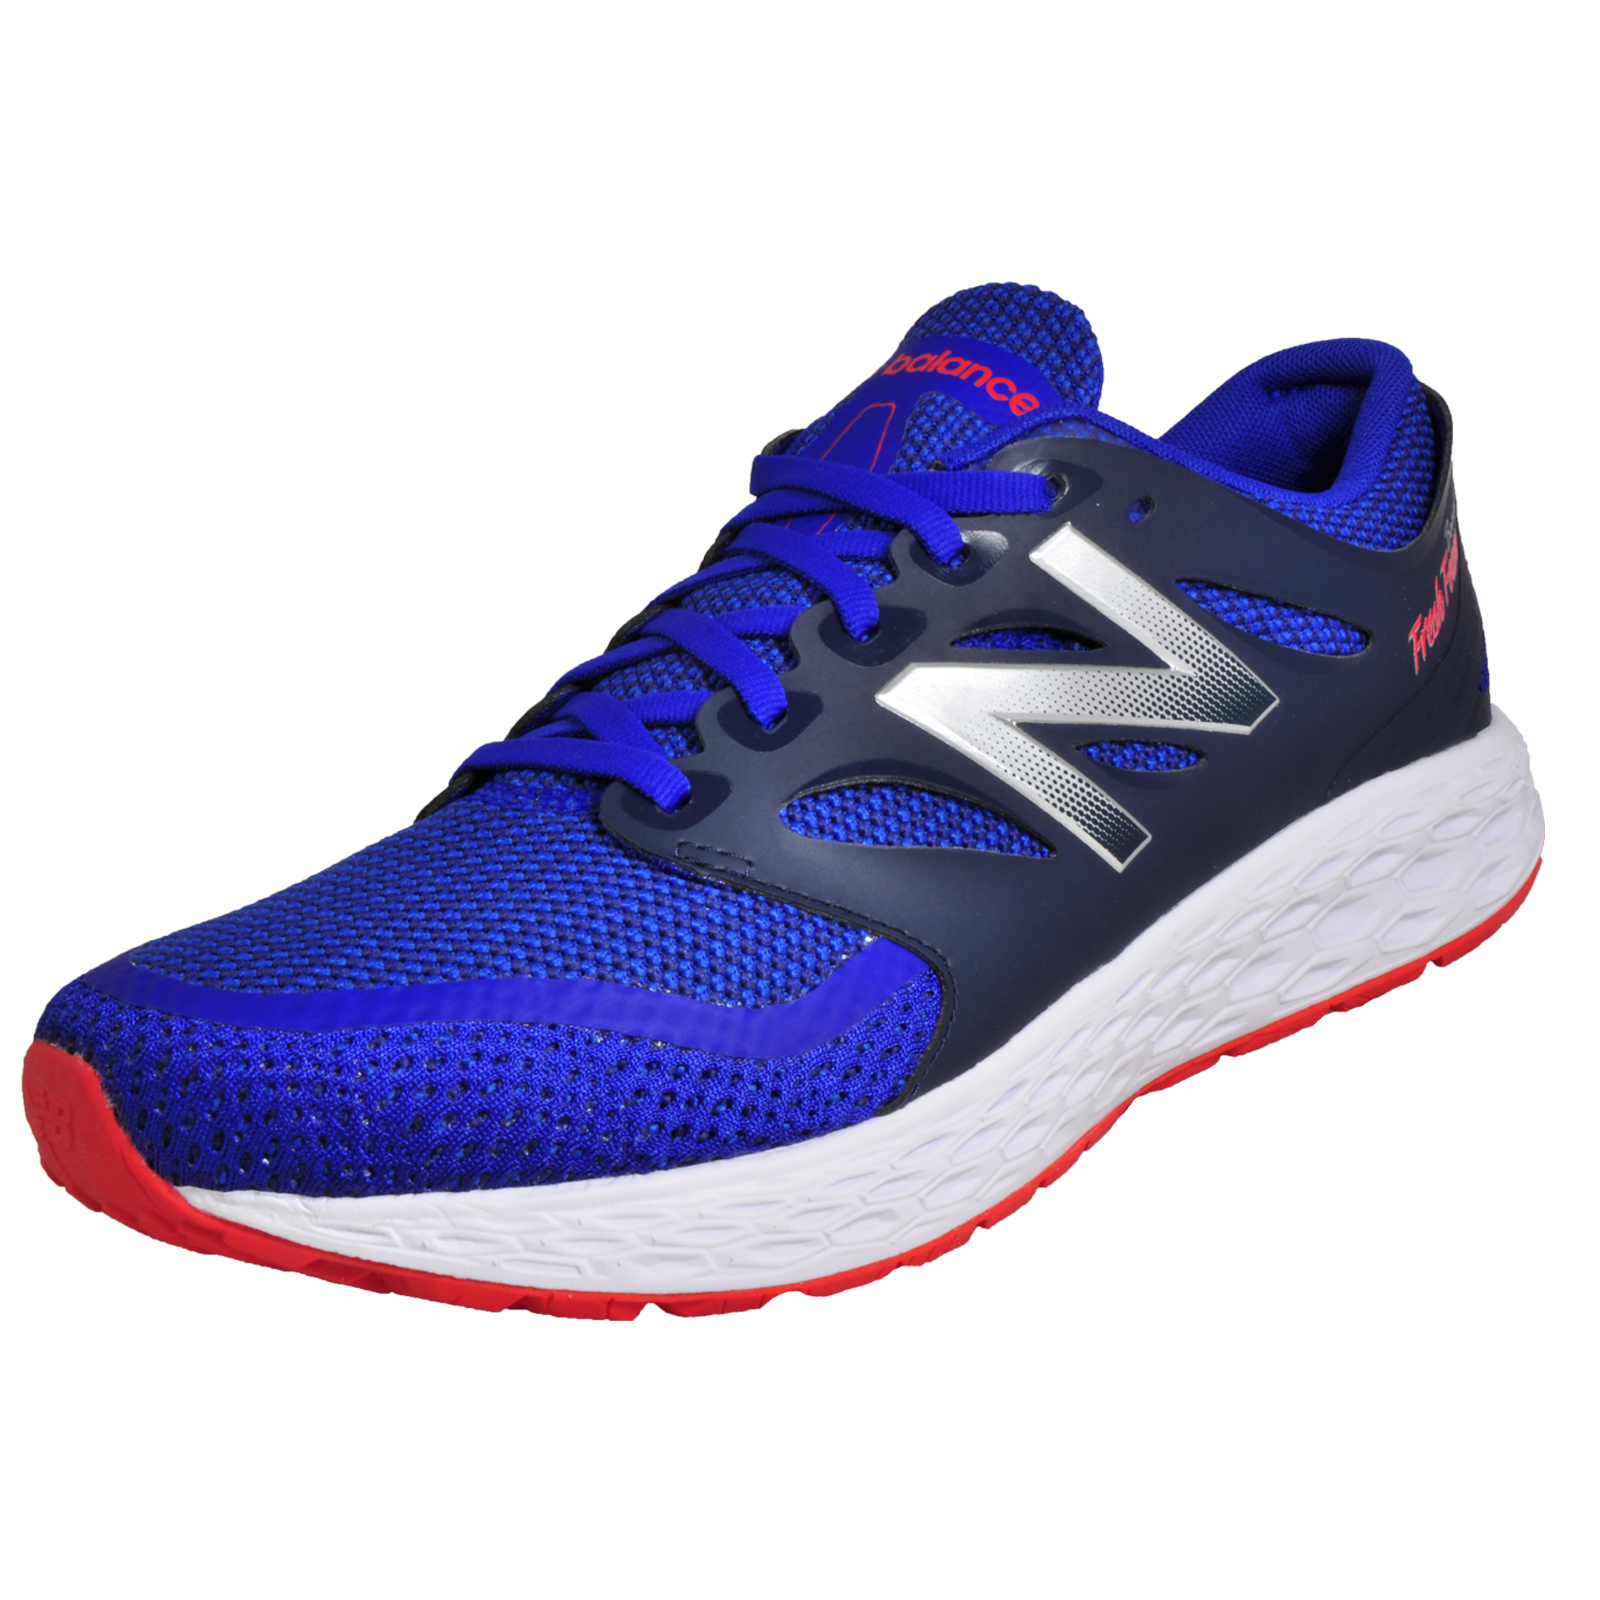 New Balance Fresh Foam Boracay v2 Men/'s Running Shoes Gym Fitness Trainers Blue